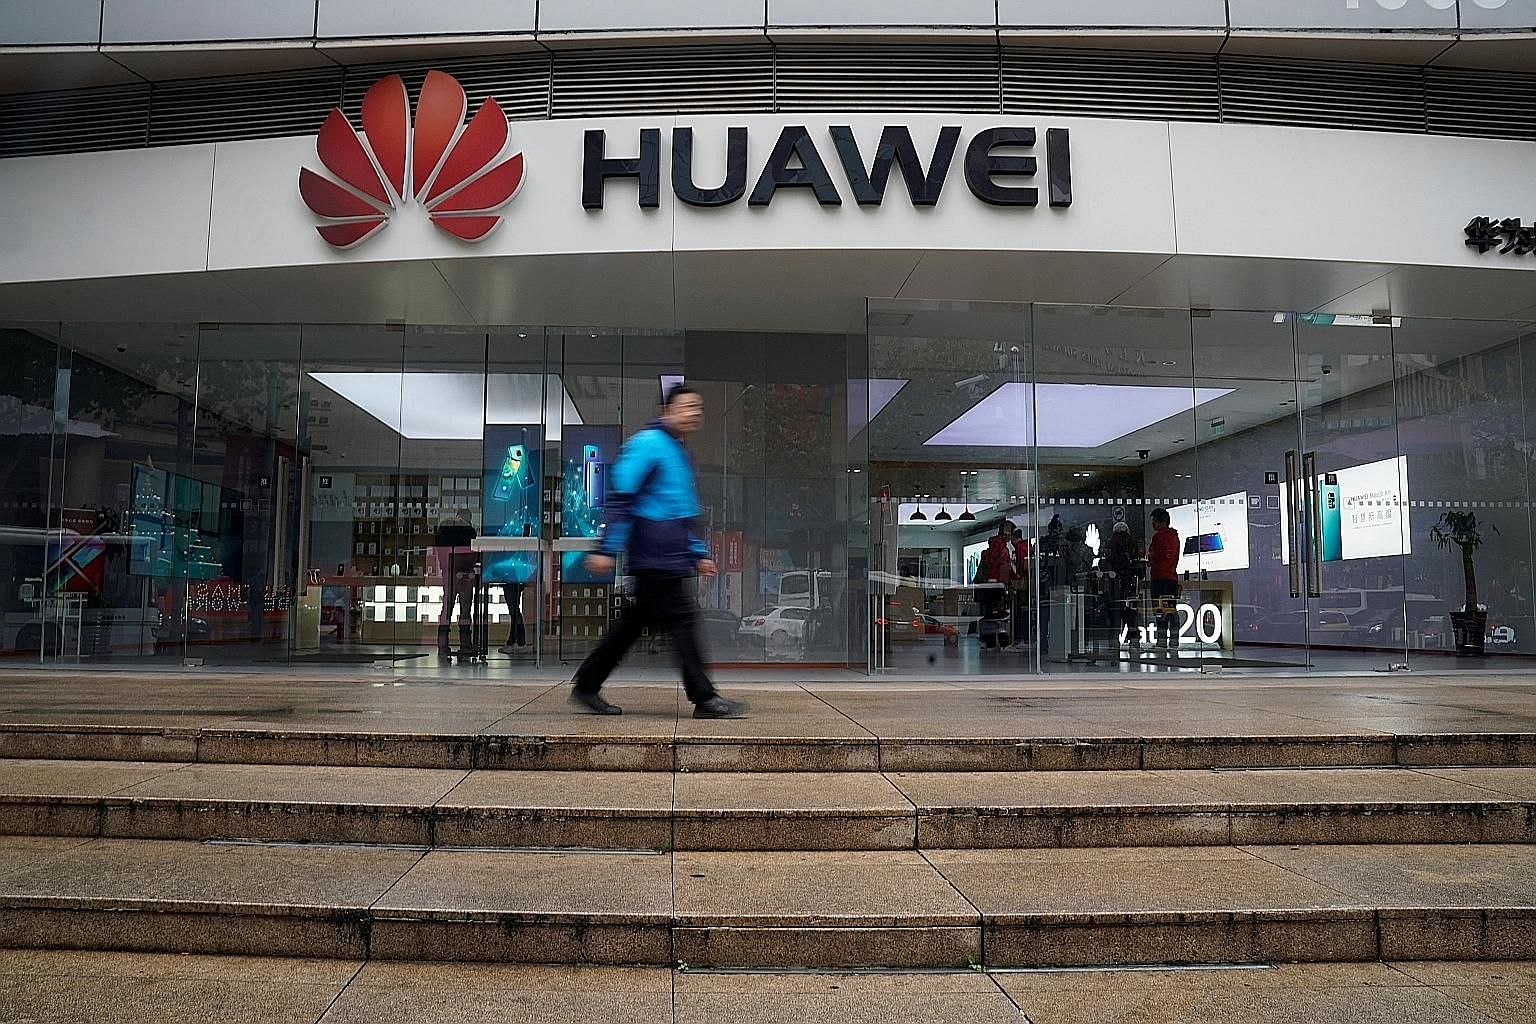 It is one thing to ban Huawei's 5G components from the US market, and something else entirely to arrest a very senior executive and potentially try her for evading US export controls. Using law enforcement against individuals for corporate actions ri